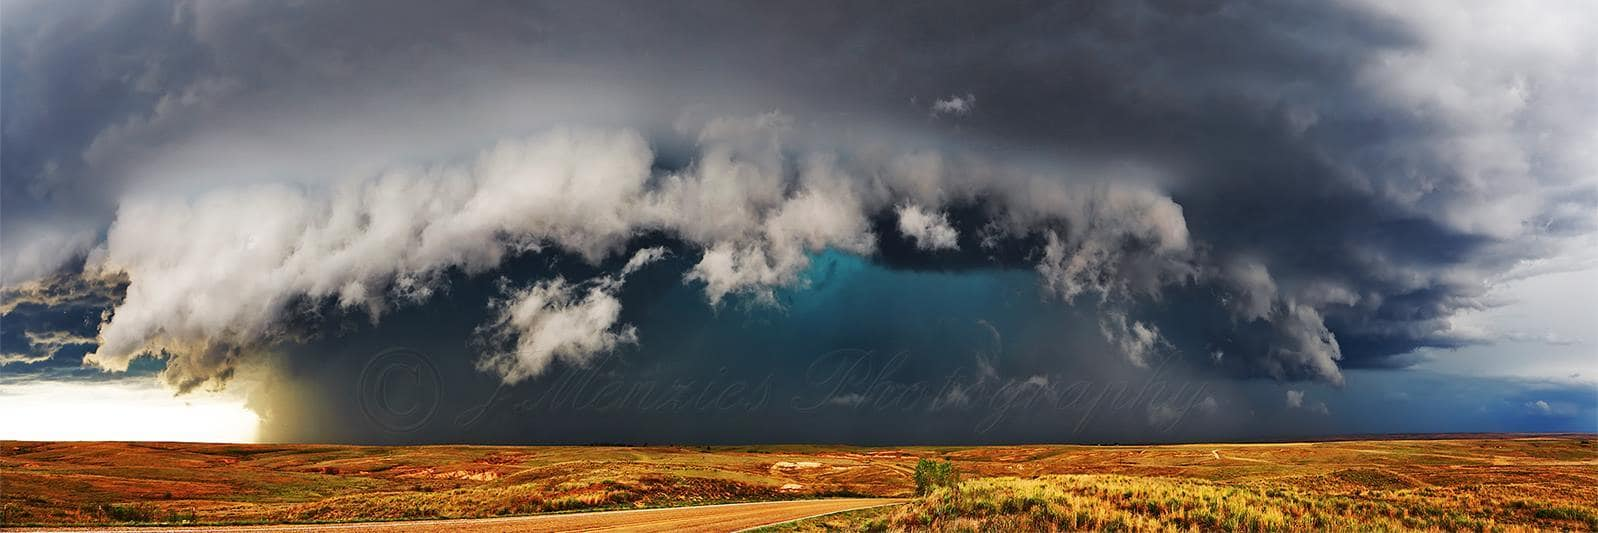 A monster supercell roams over the Texas Panhandle on April 16th 2015 just north of Alanreed, TX on FM291. This storm produced multiple tornadoes during its lifespan.